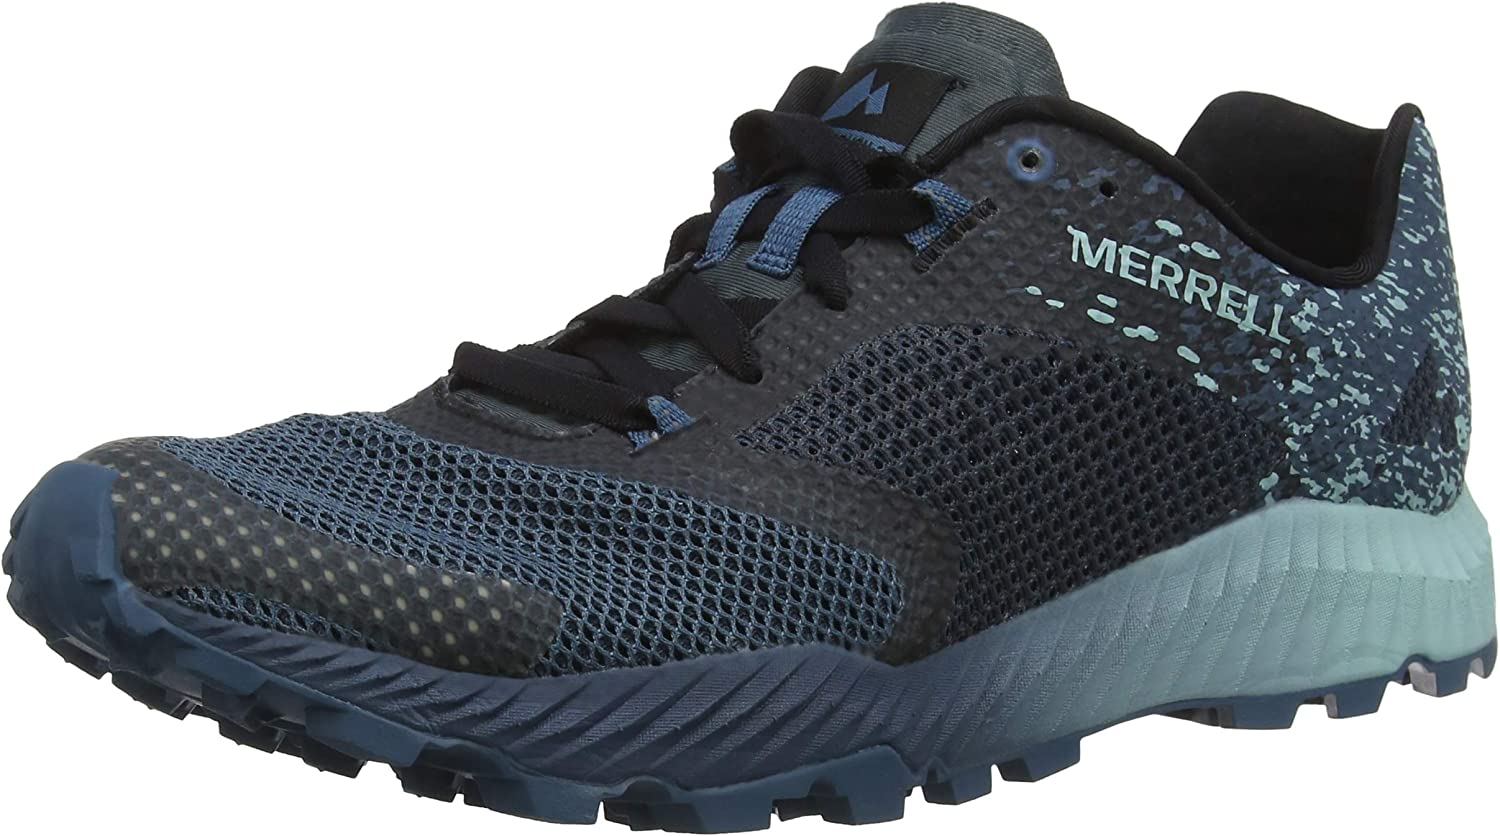 Merrell All out Crush 2, Zapatillas de Running para Asfalto para Hombre, Azul (Legion/Slate), 48 EU: Amazon.es: Zapatos y complementos